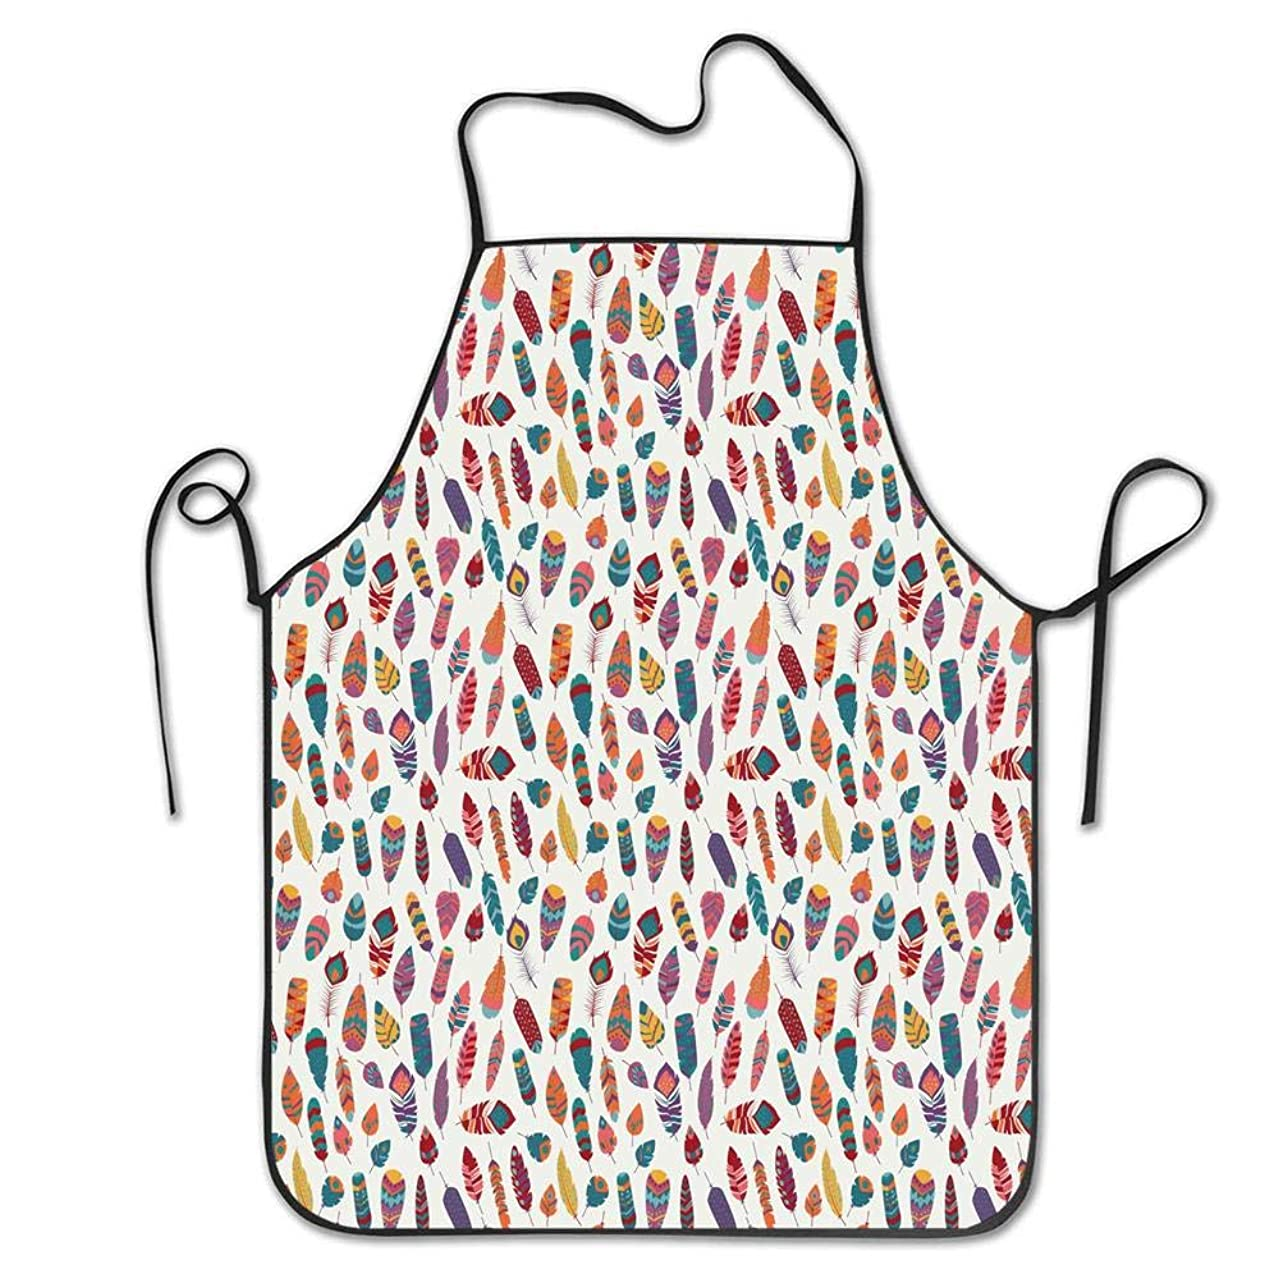 Mrsangelalouise Boho Vintage Tribal and Ethnic Colorful Vibrant Plume Figures Jumbled Alignment Apron Home Bib Apron for Women Men Girl Kids Gifts Kitchen Decoration Cooking